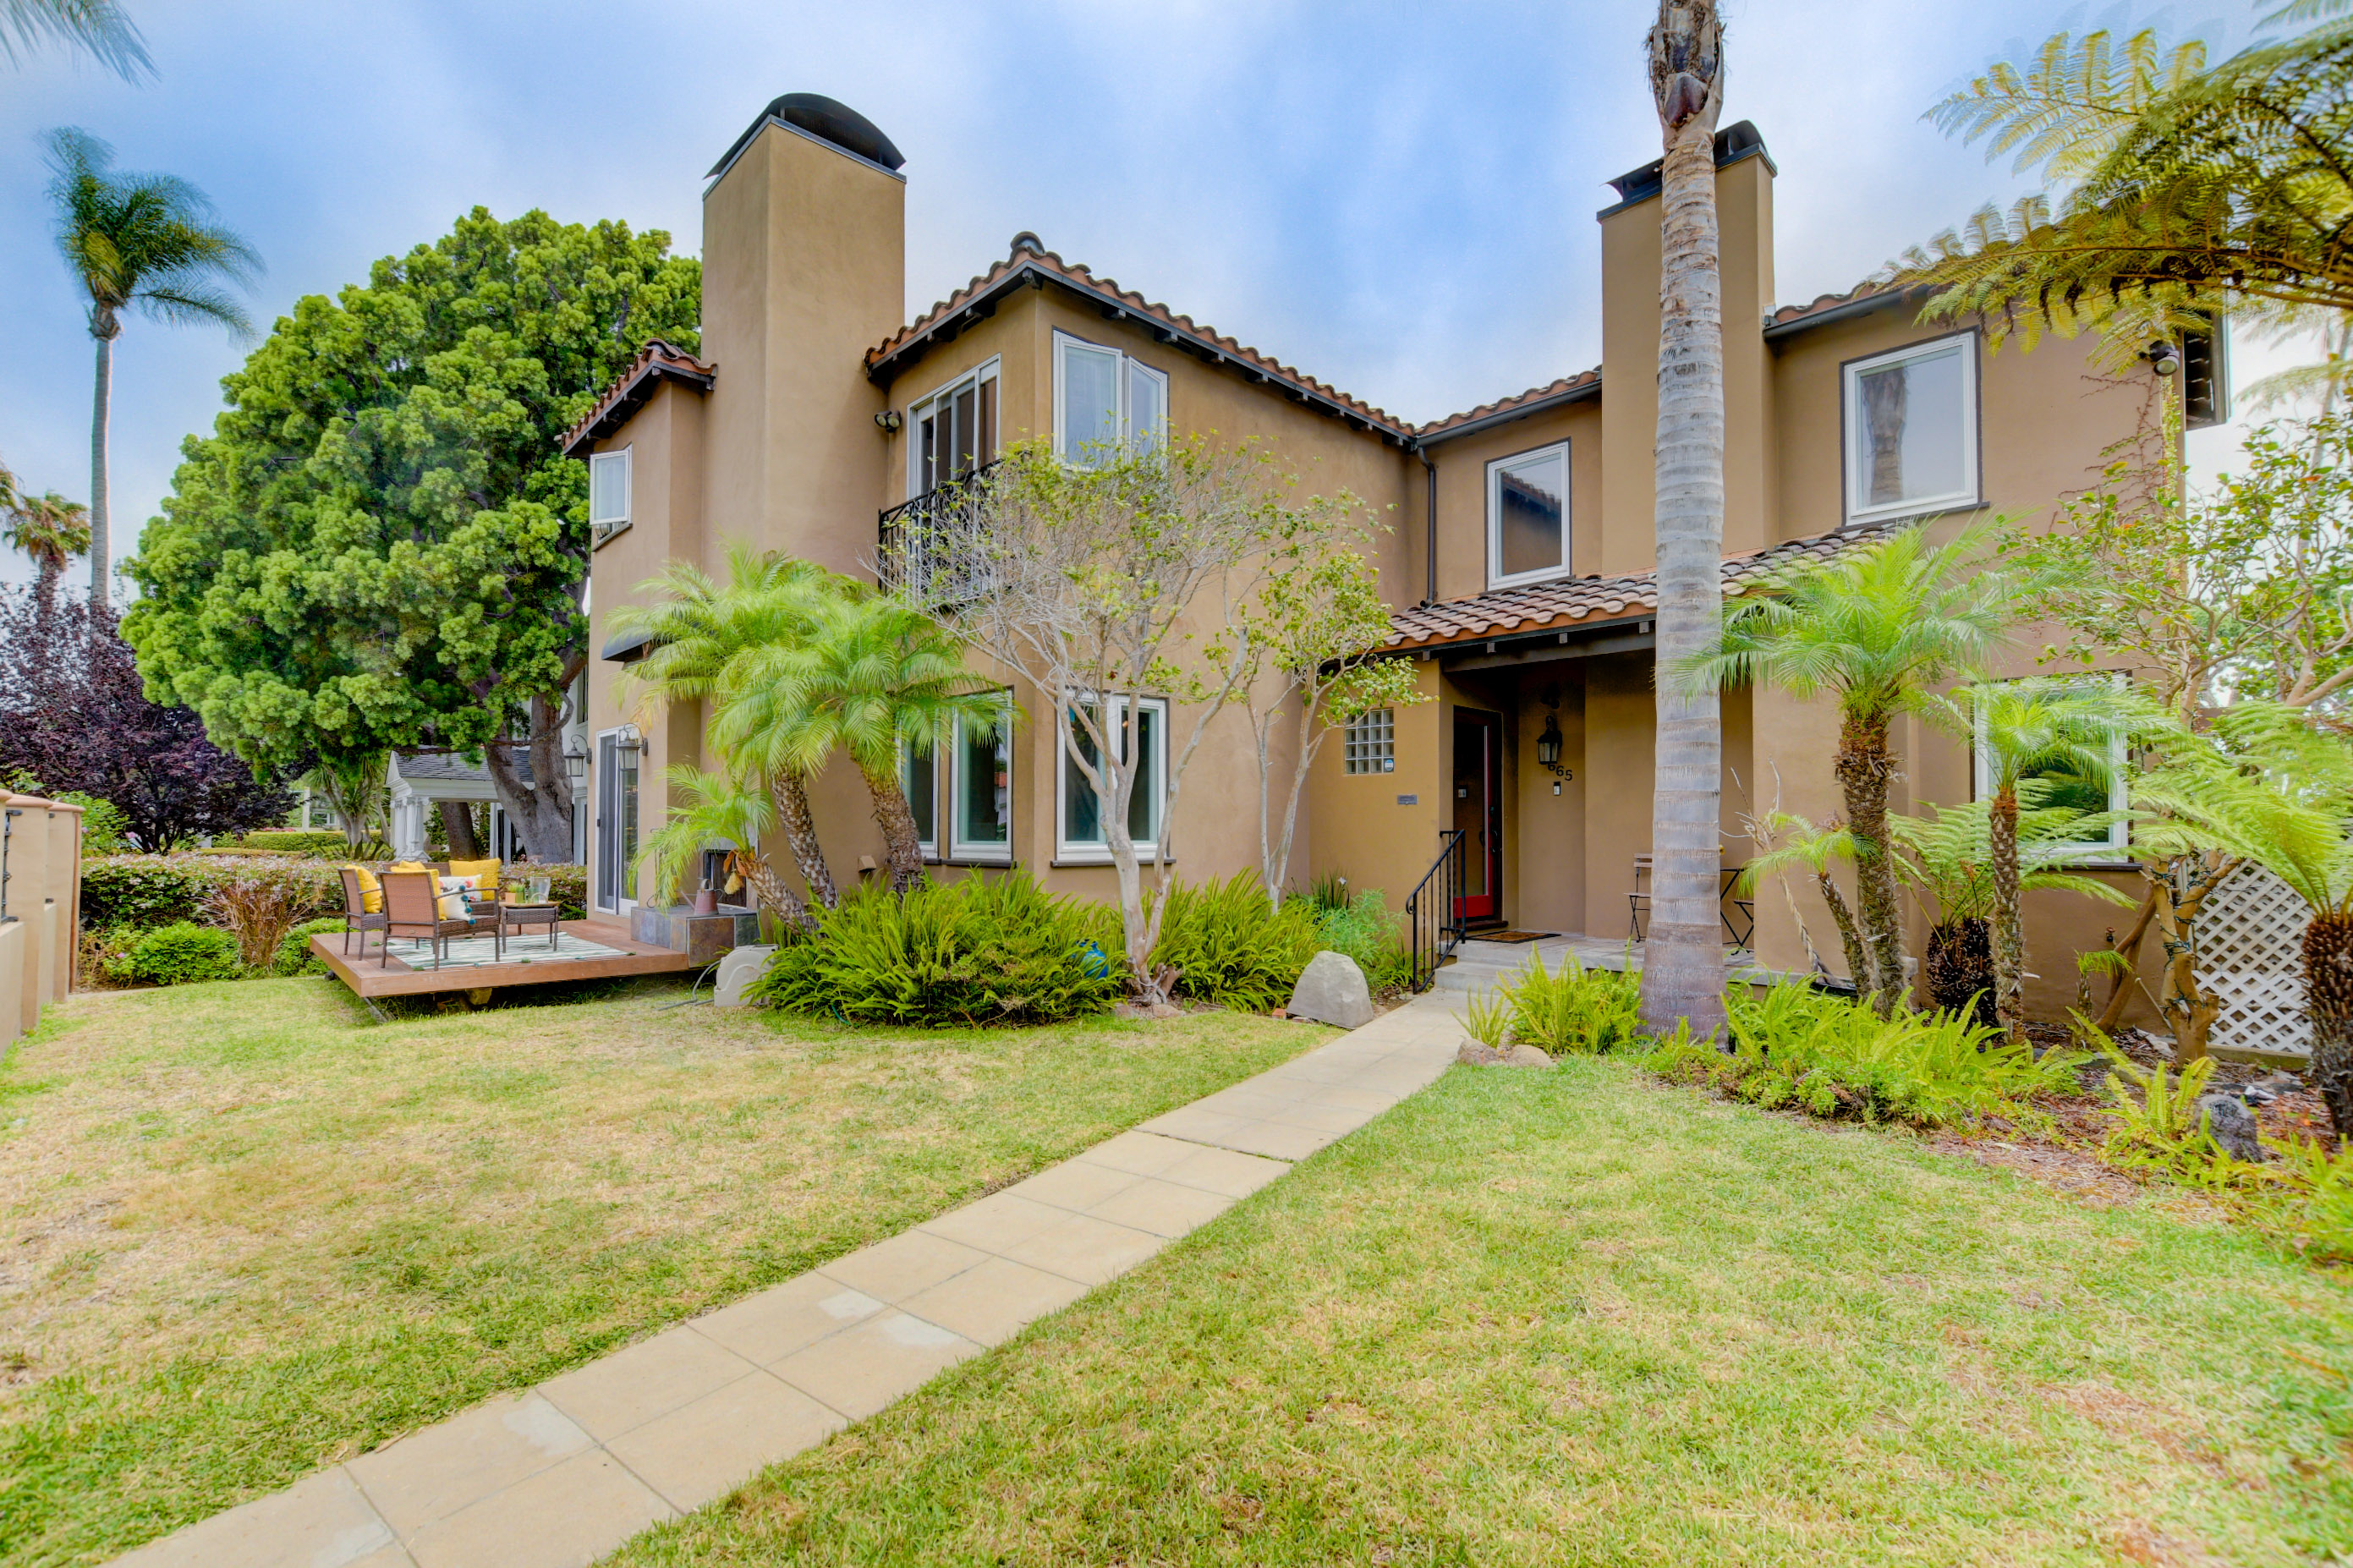 2665 Narcissus Dr. San Diego, CA 92106